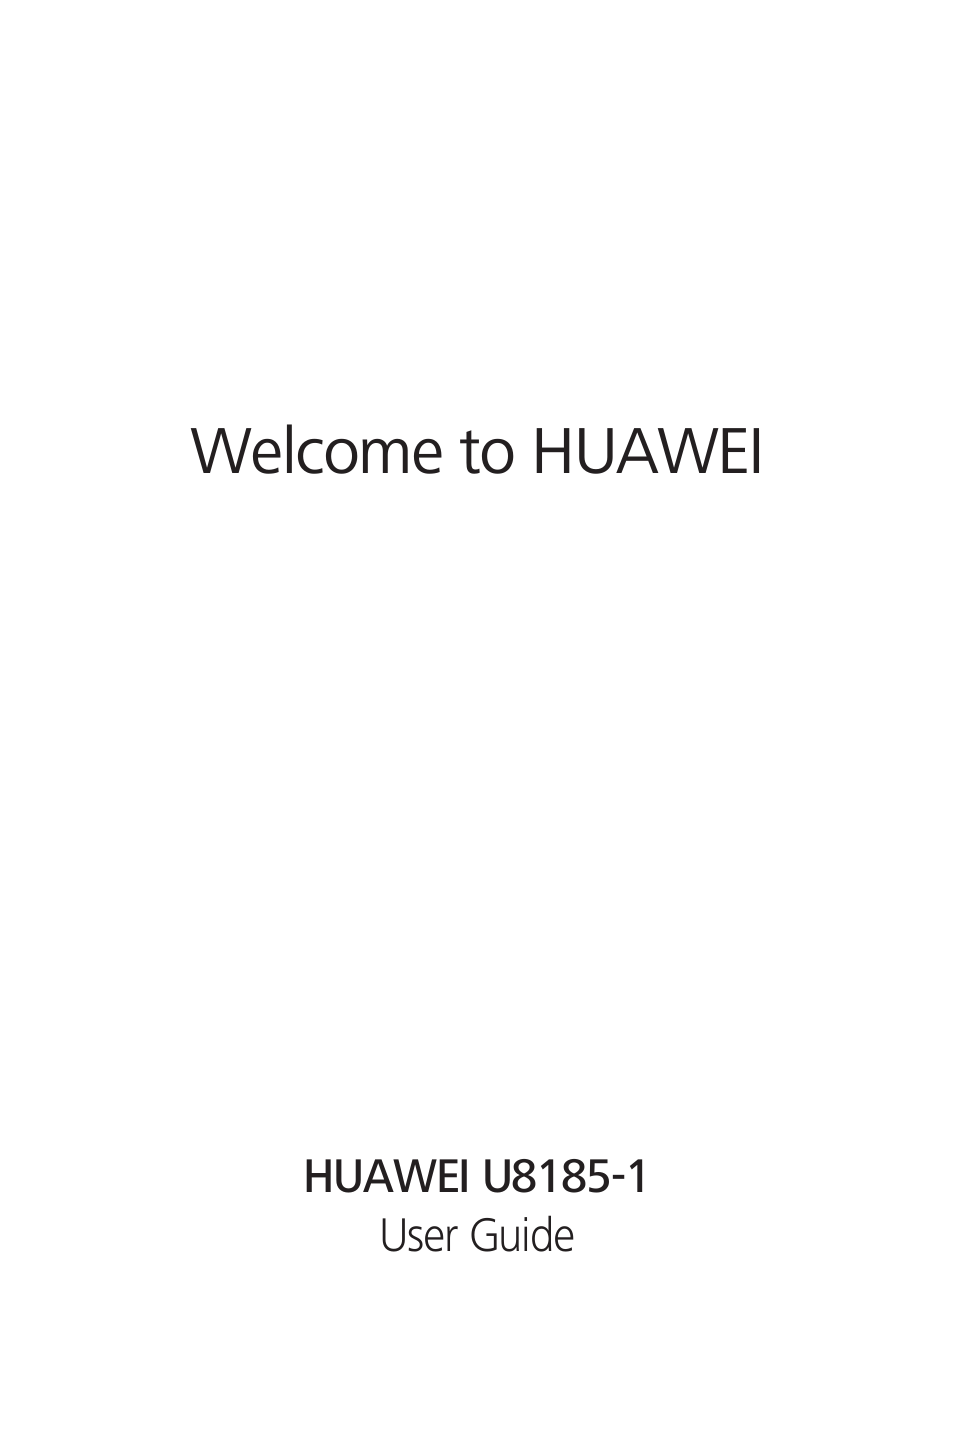 huawei ascend y100 user manual 75 pages also for u8185 1 rh manualsdir com huawei ascend xt user guide huawei ascend p6 user guide